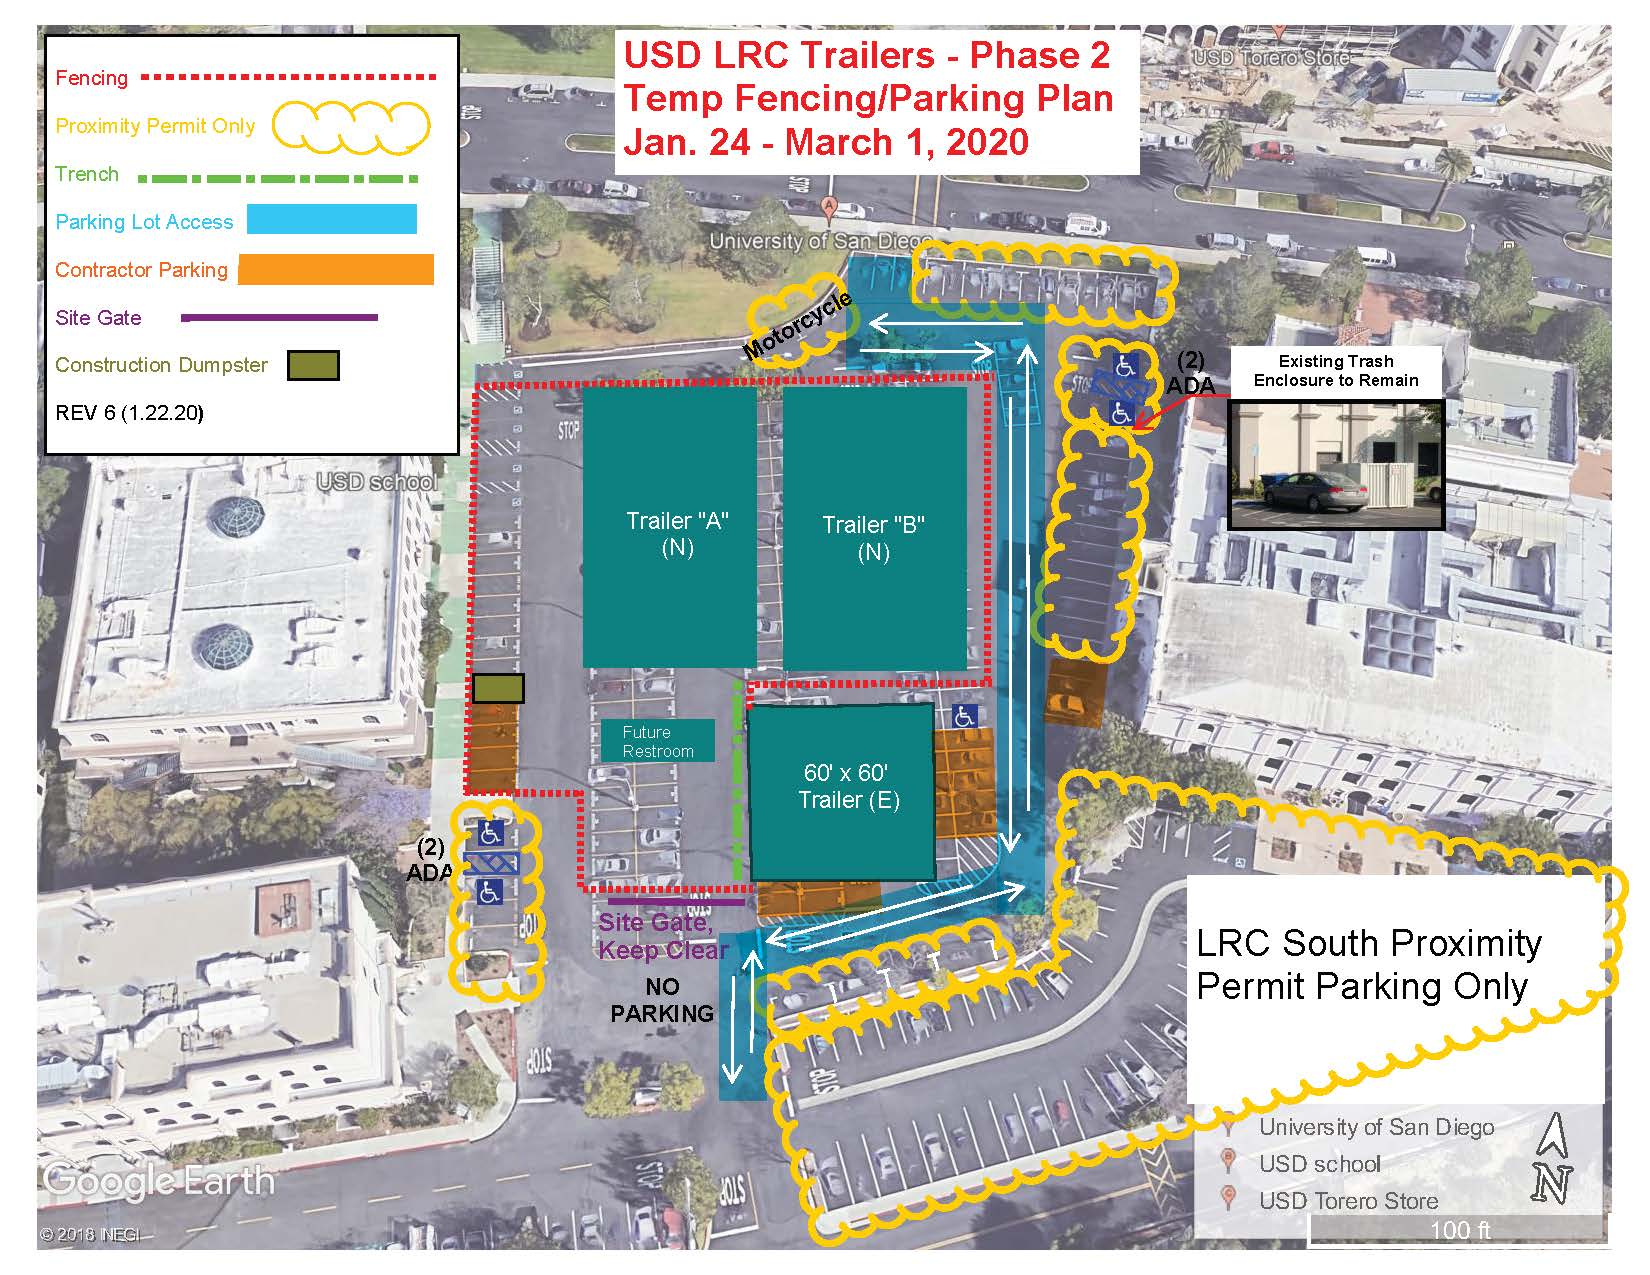 Law Parking Lot Phase 2 Jan 24-March 1, 2020